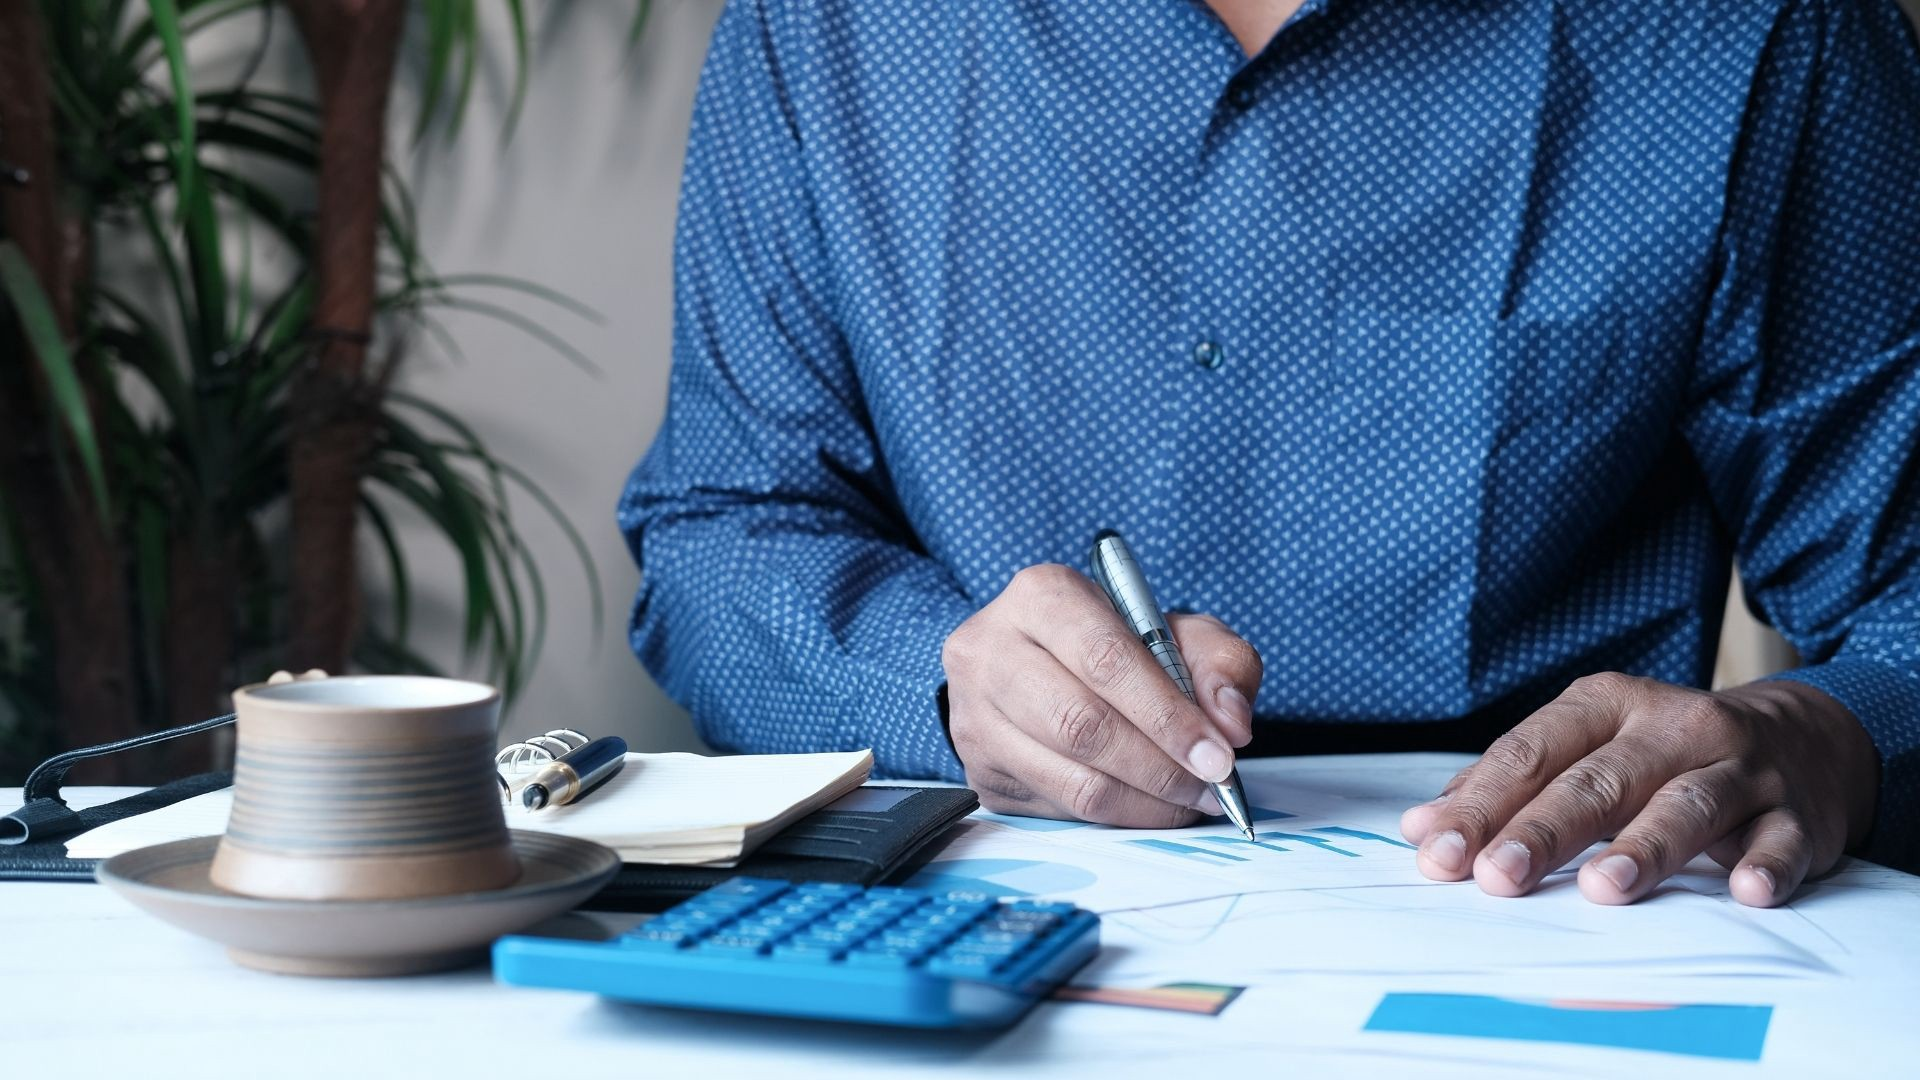 An individual in a blue shirt writing down a budget with a calculator, papers, and notebook in front of them